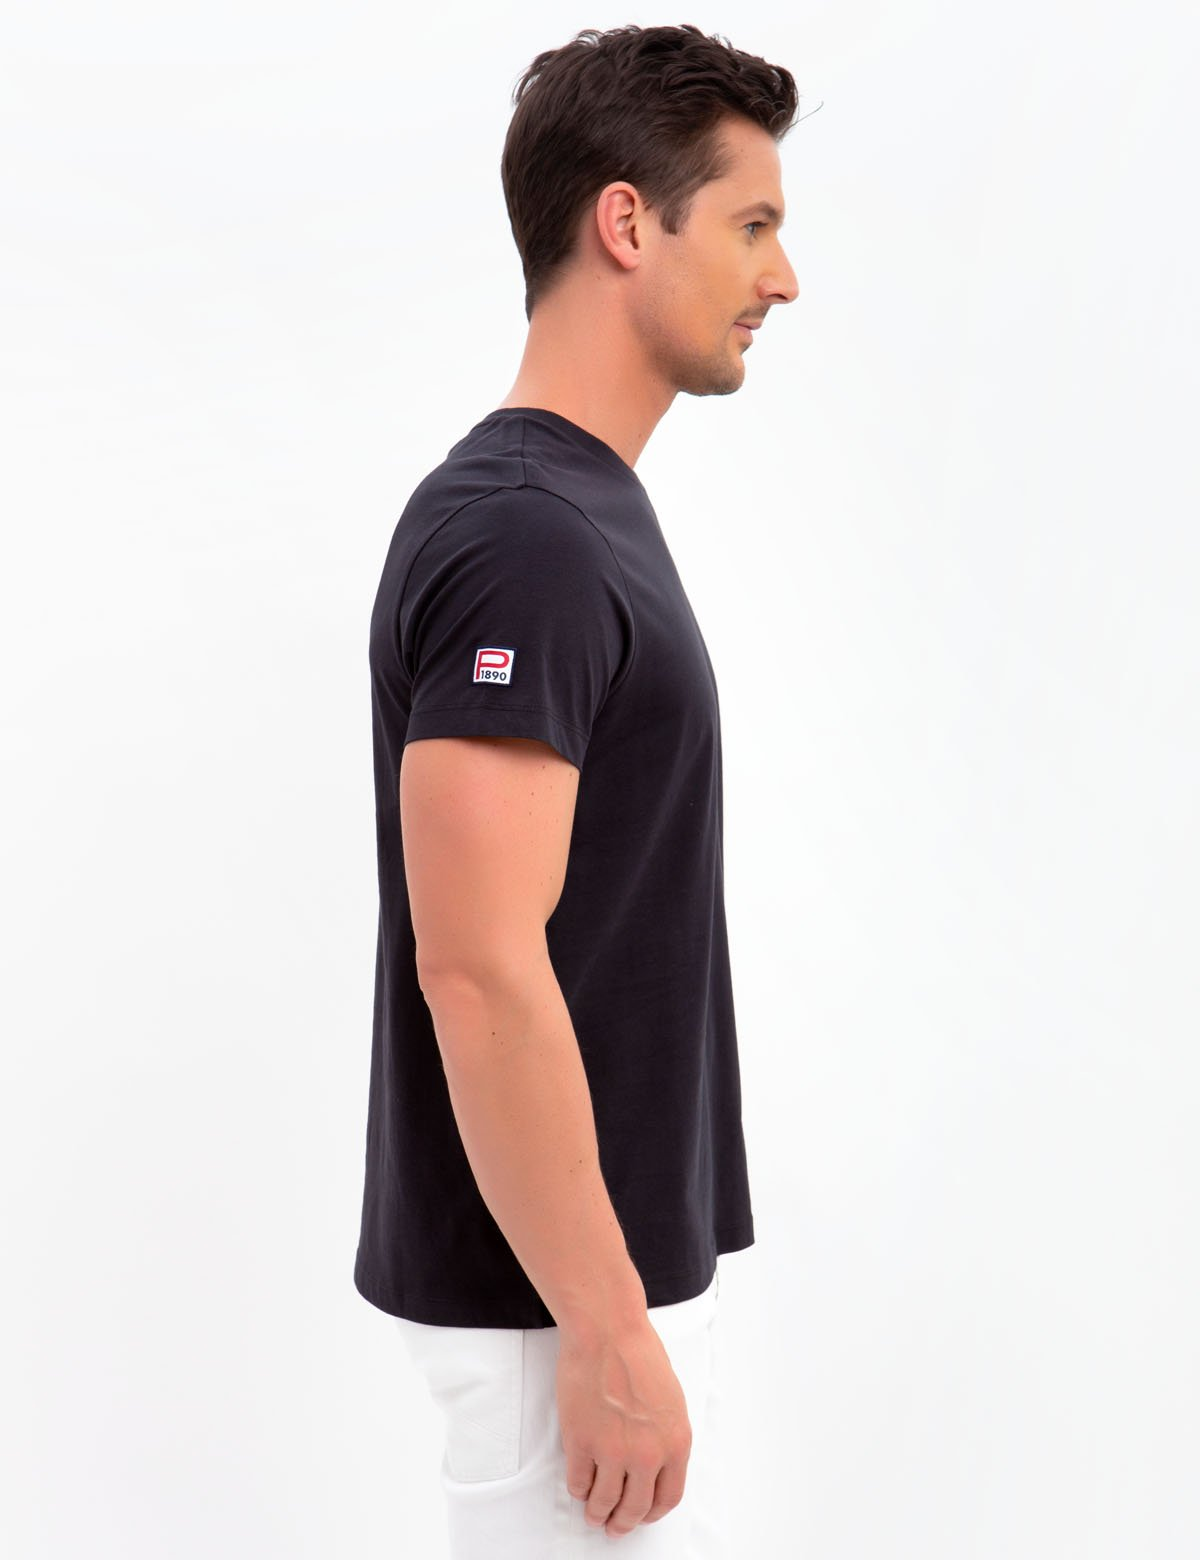 U.S. POLO ASSN. CREW NECK TEE - U.S. Polo Assn.